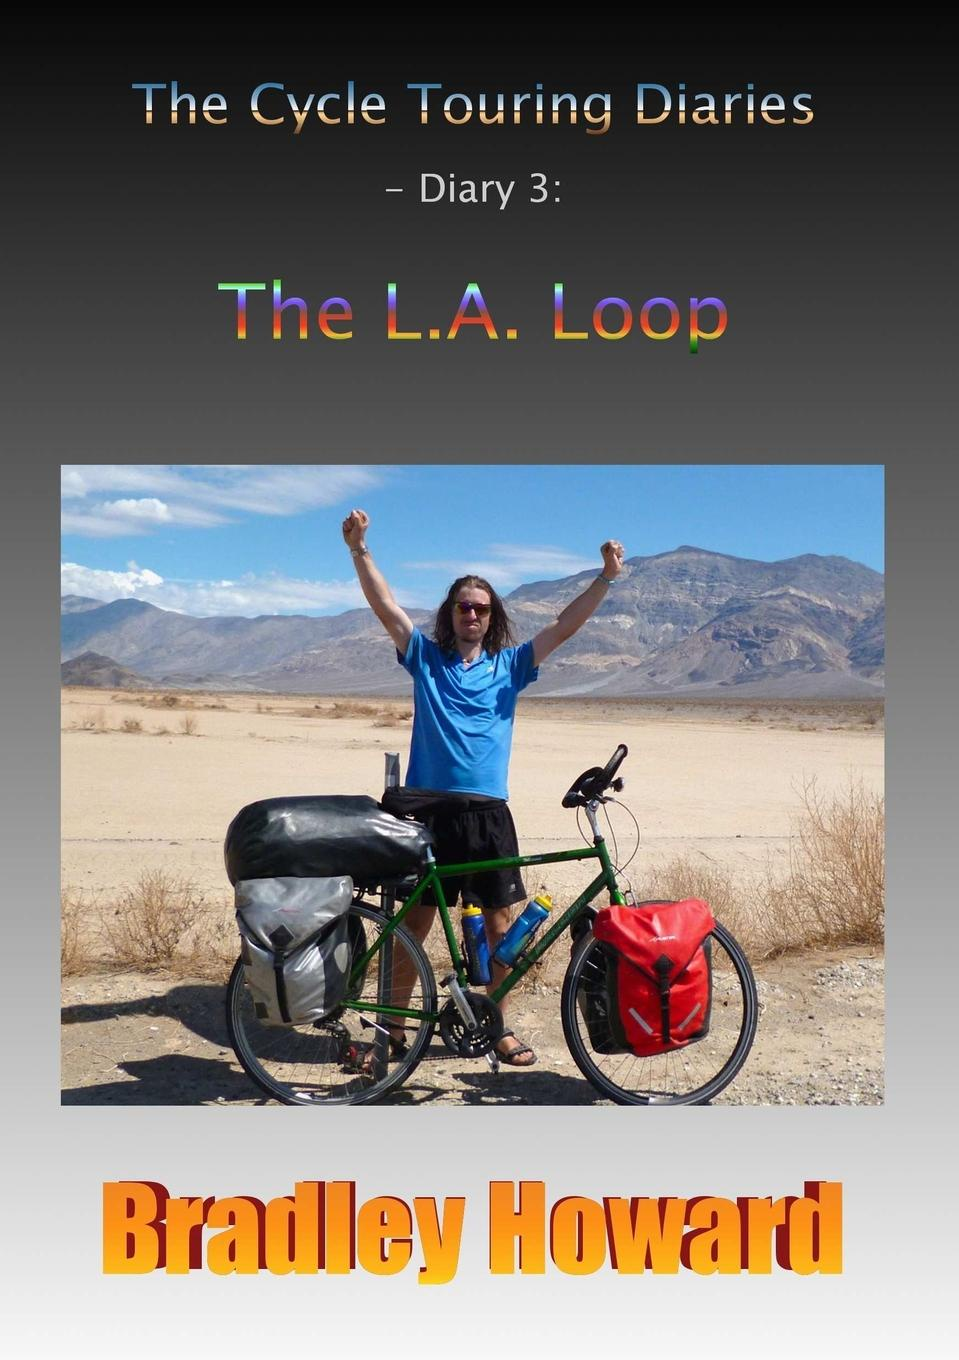 Bradley Howard The Cycle Touring Diaries - Diary 3. The L.A. Loop